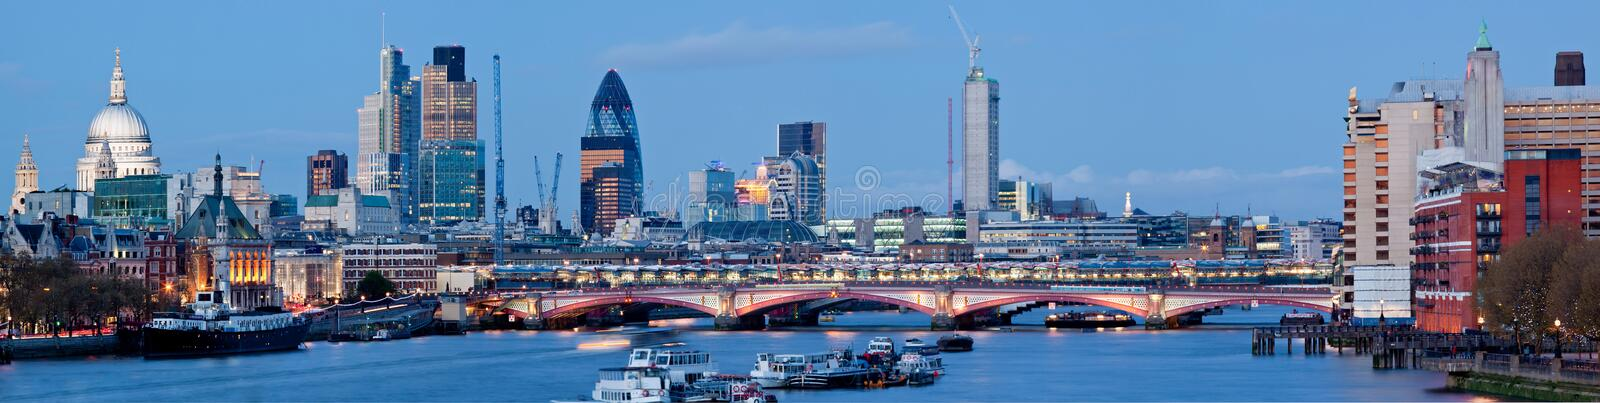 Panorama of St. Paul Cathedral London royalty free stock photography